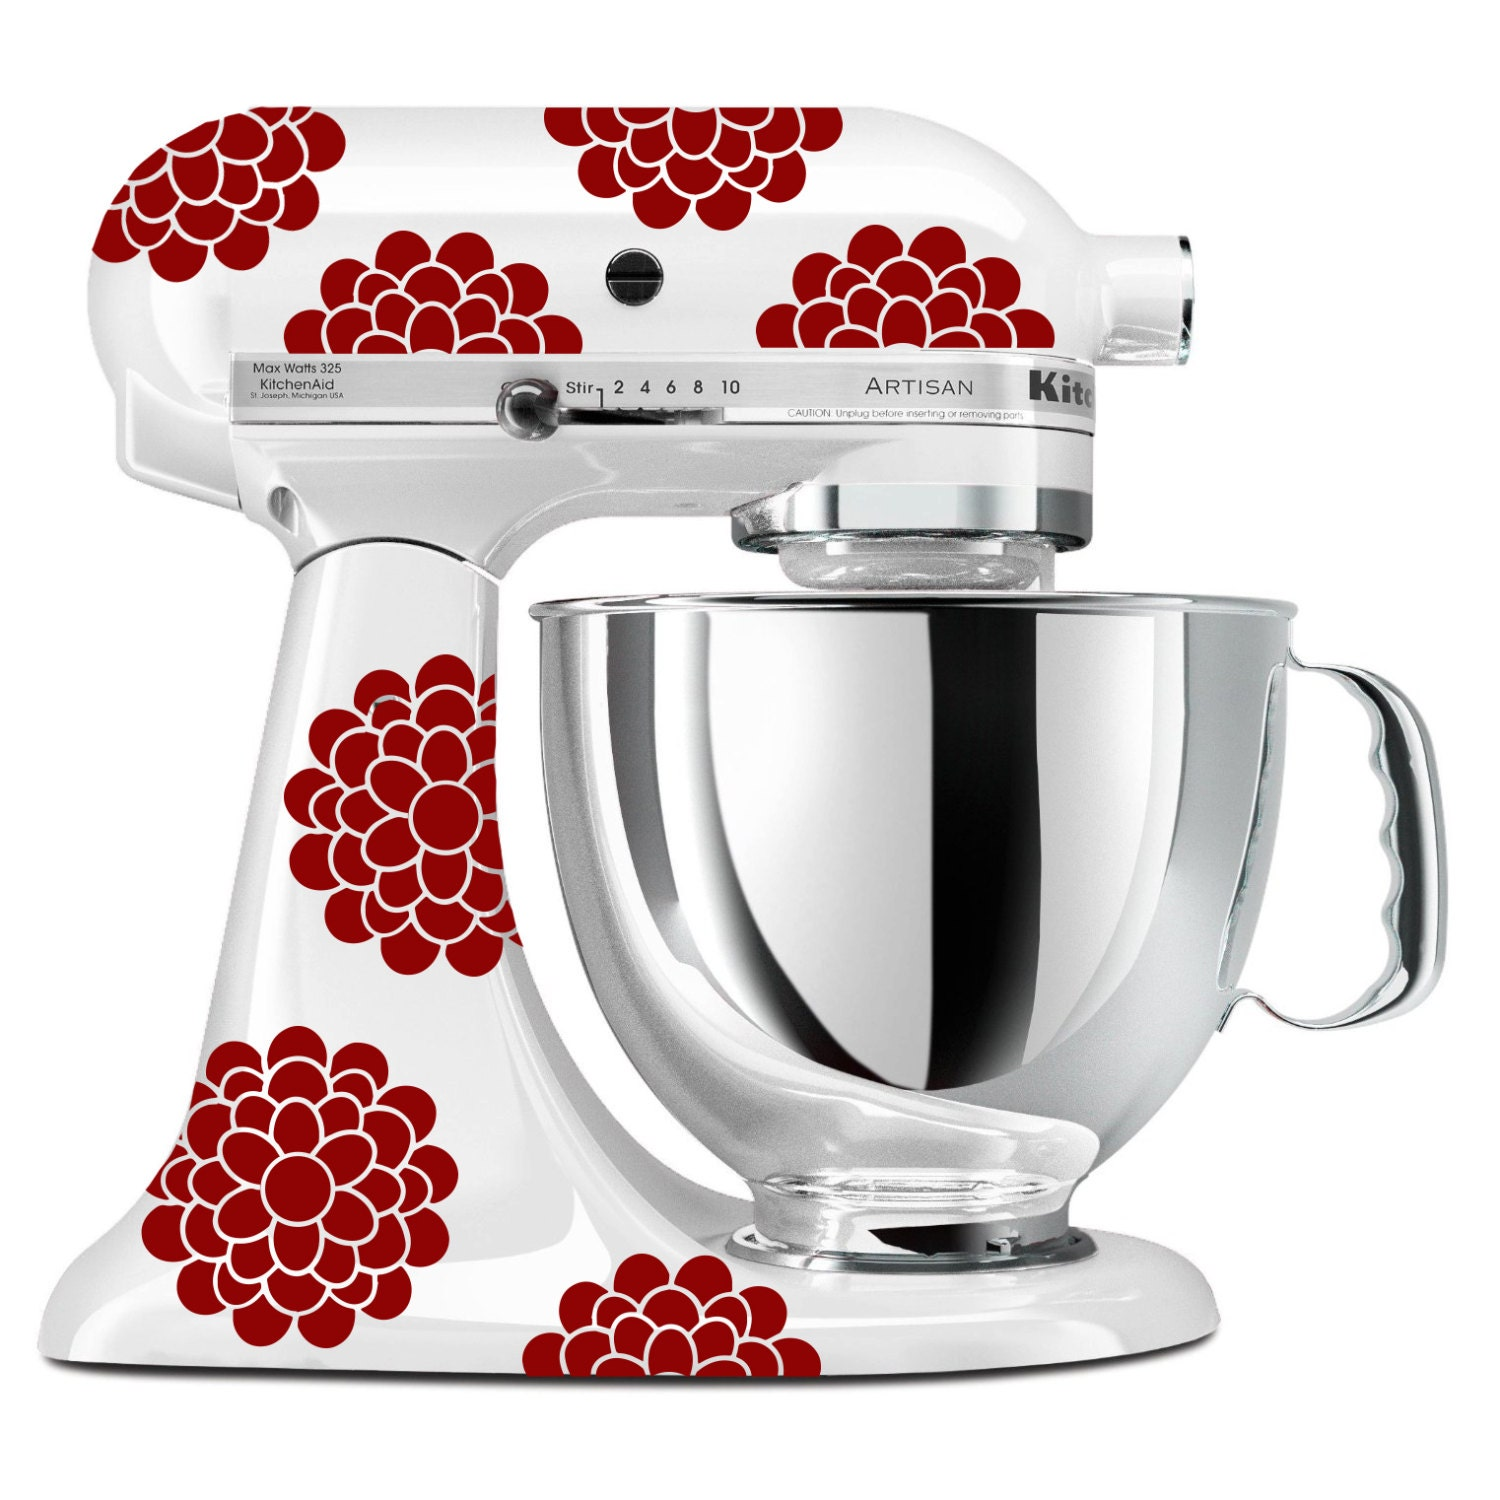 Kitchenaid Stand Up Mixer Flower Decals Any Color Floral